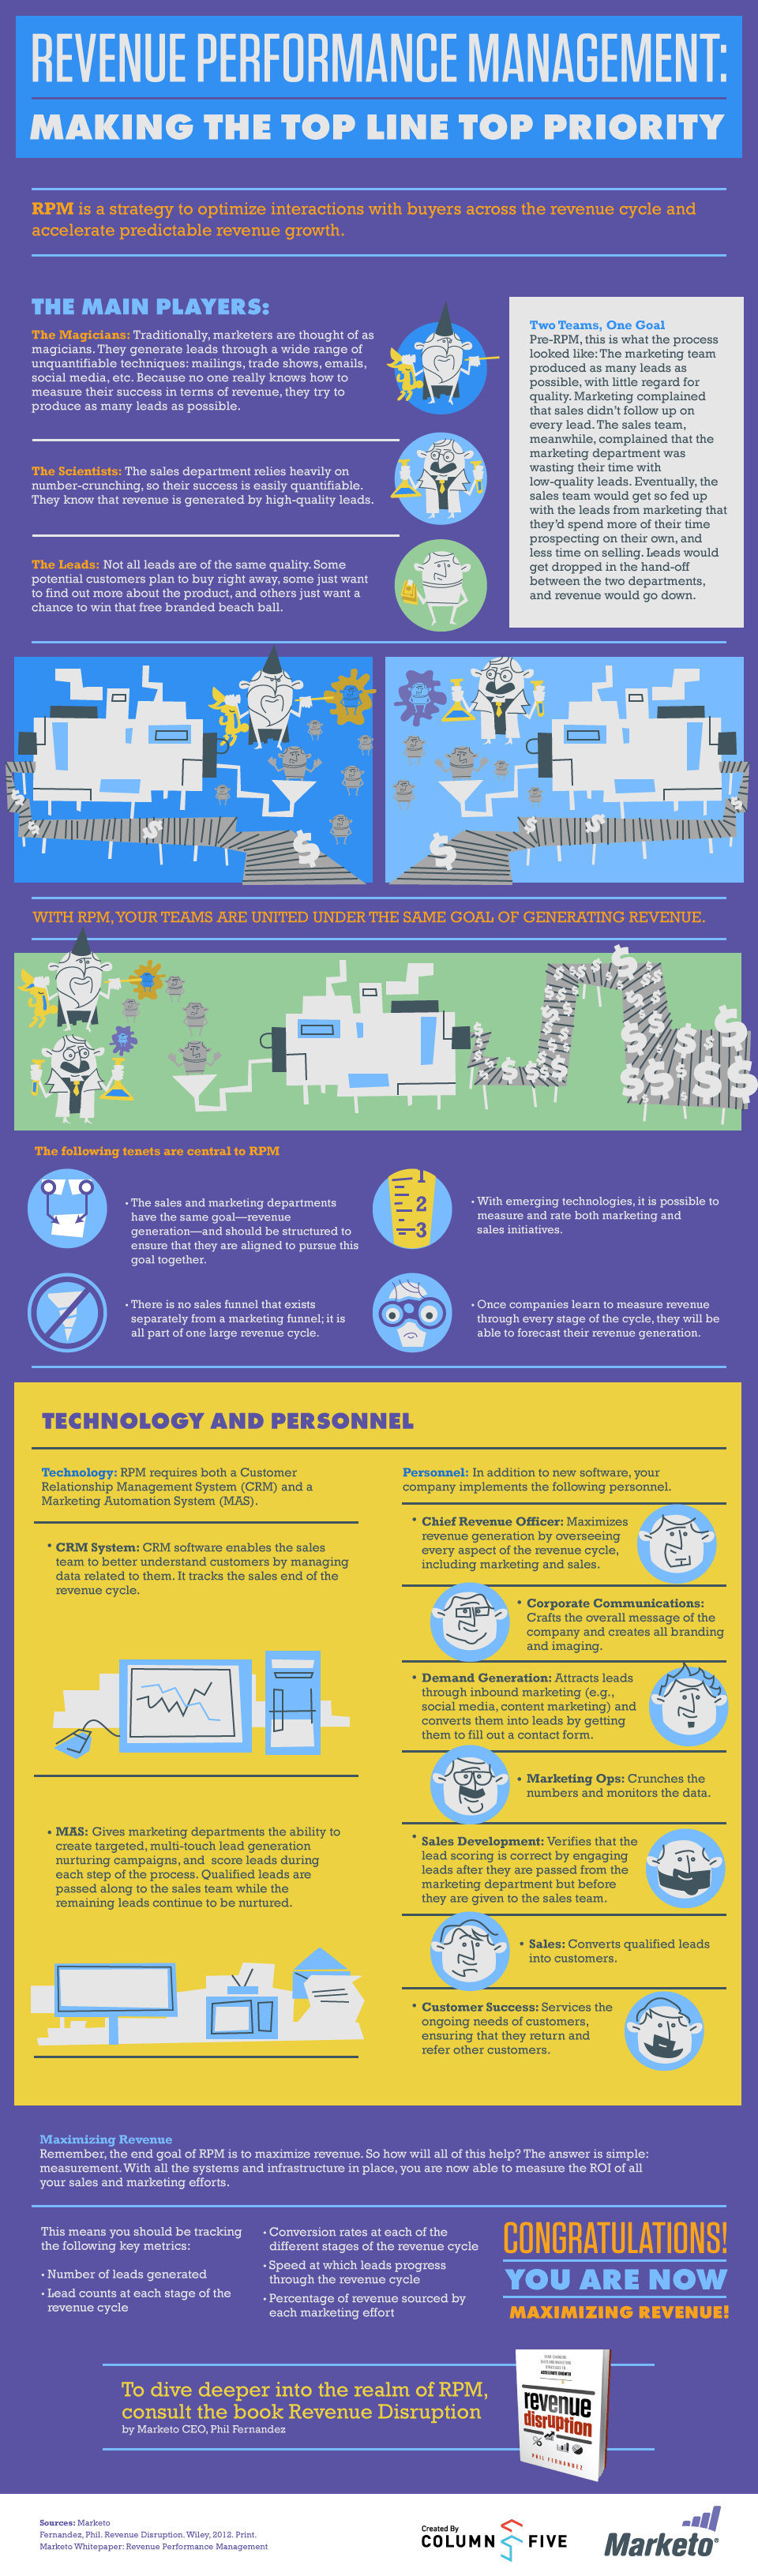 The Revenue Performance Management Infographic by Marketo